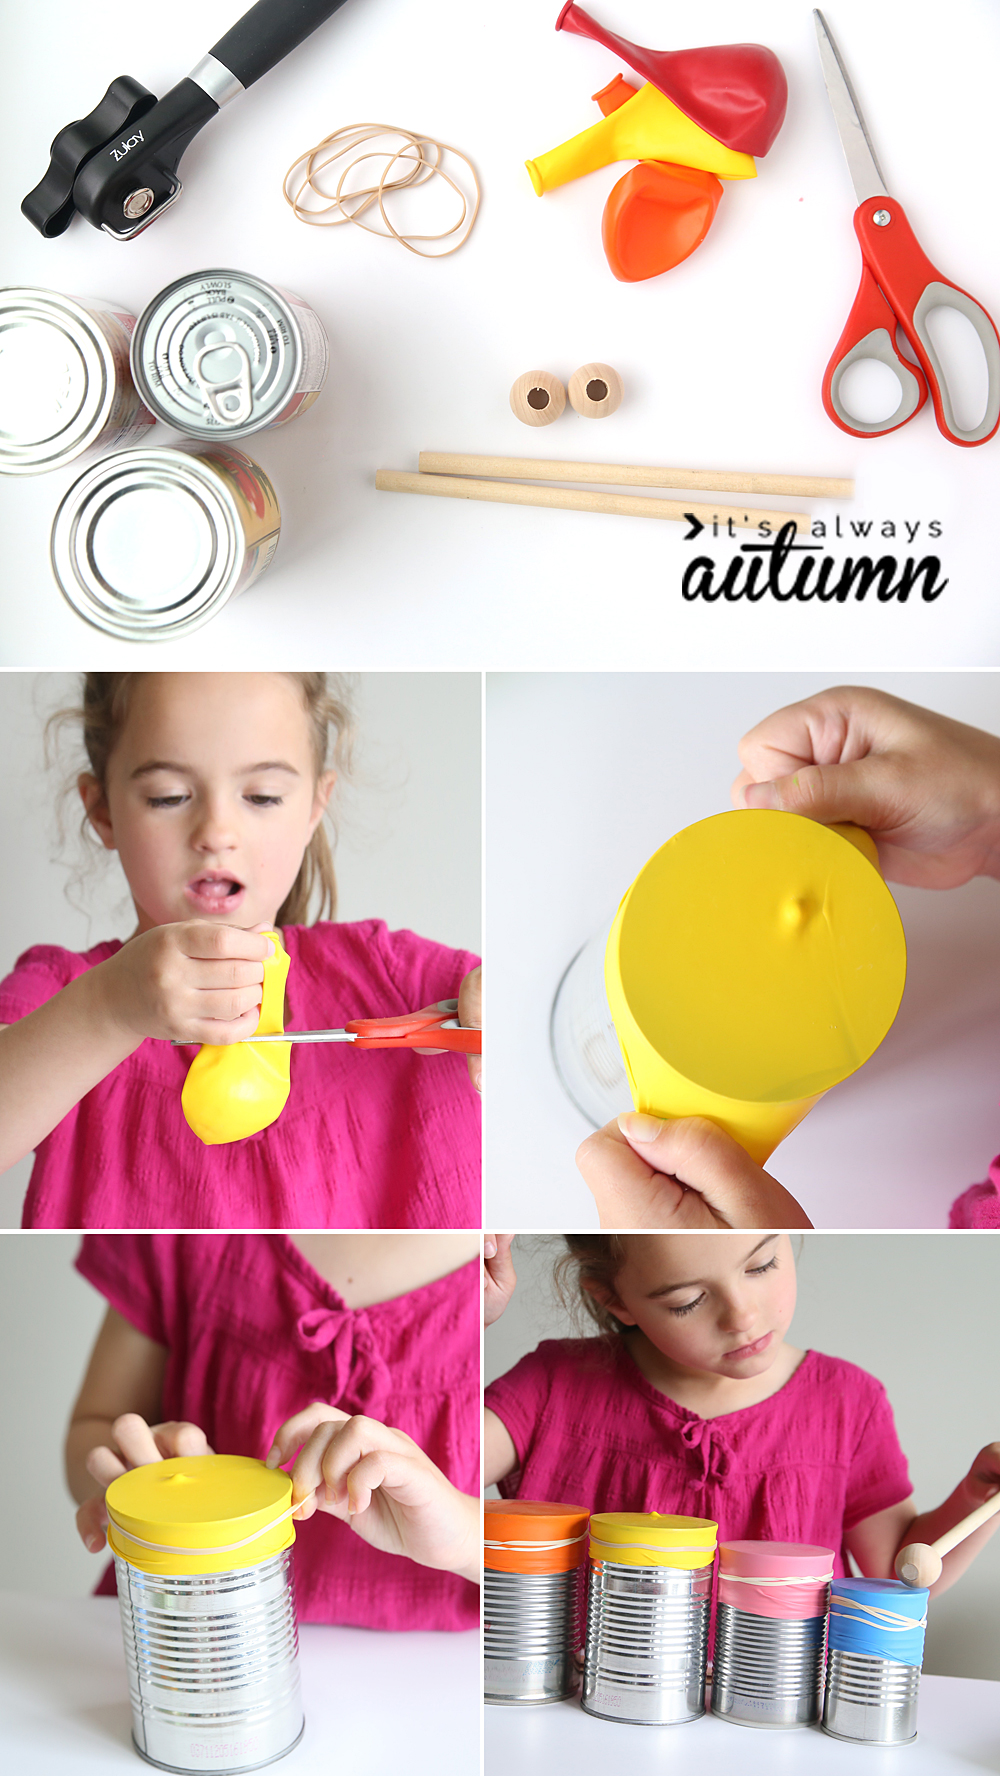 learn how to help your kids make a drum set and a kazoo. easy DIY musical instruments for kids. indoor activity ideas.